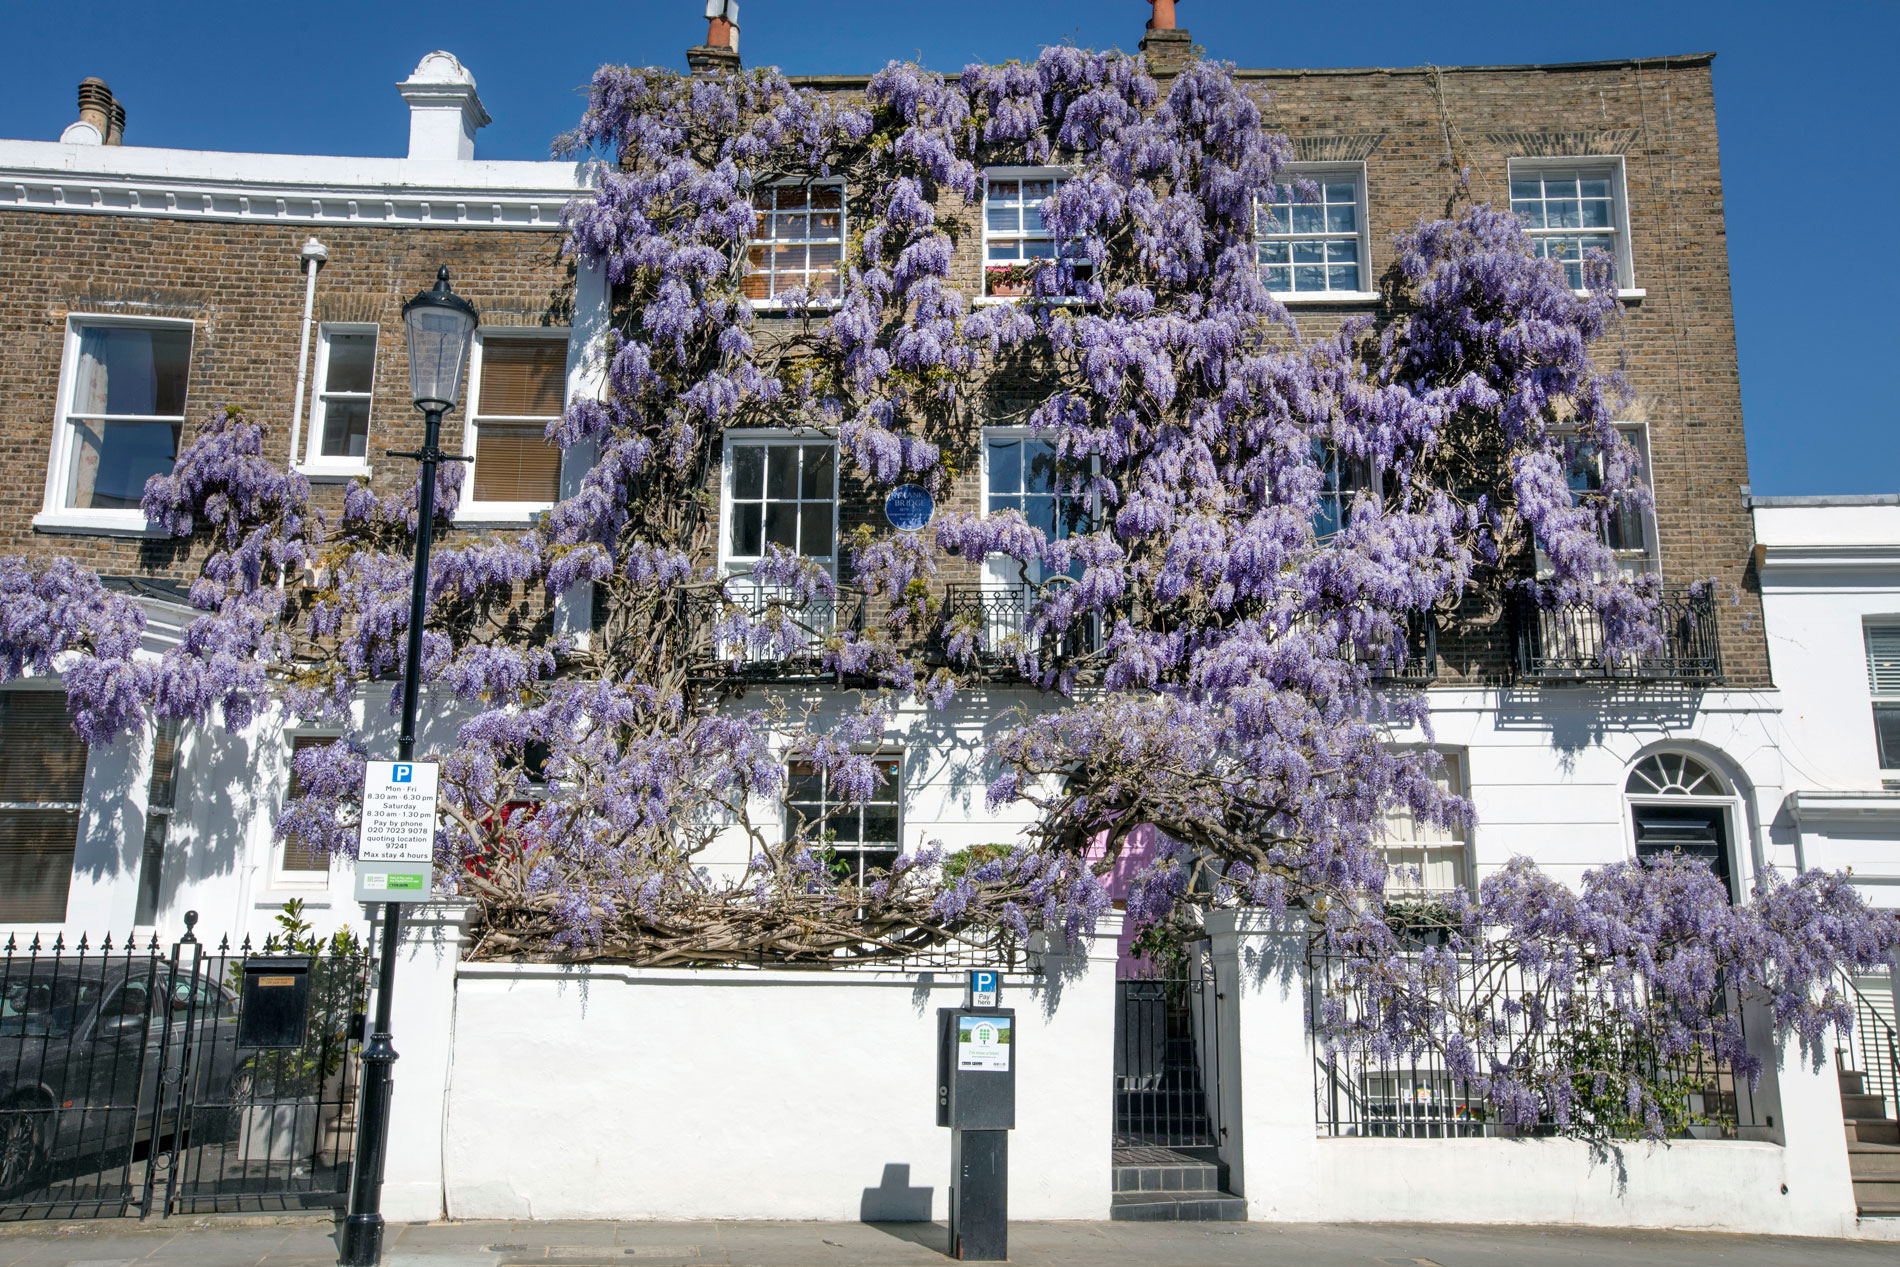 Notting Hill Wisteria